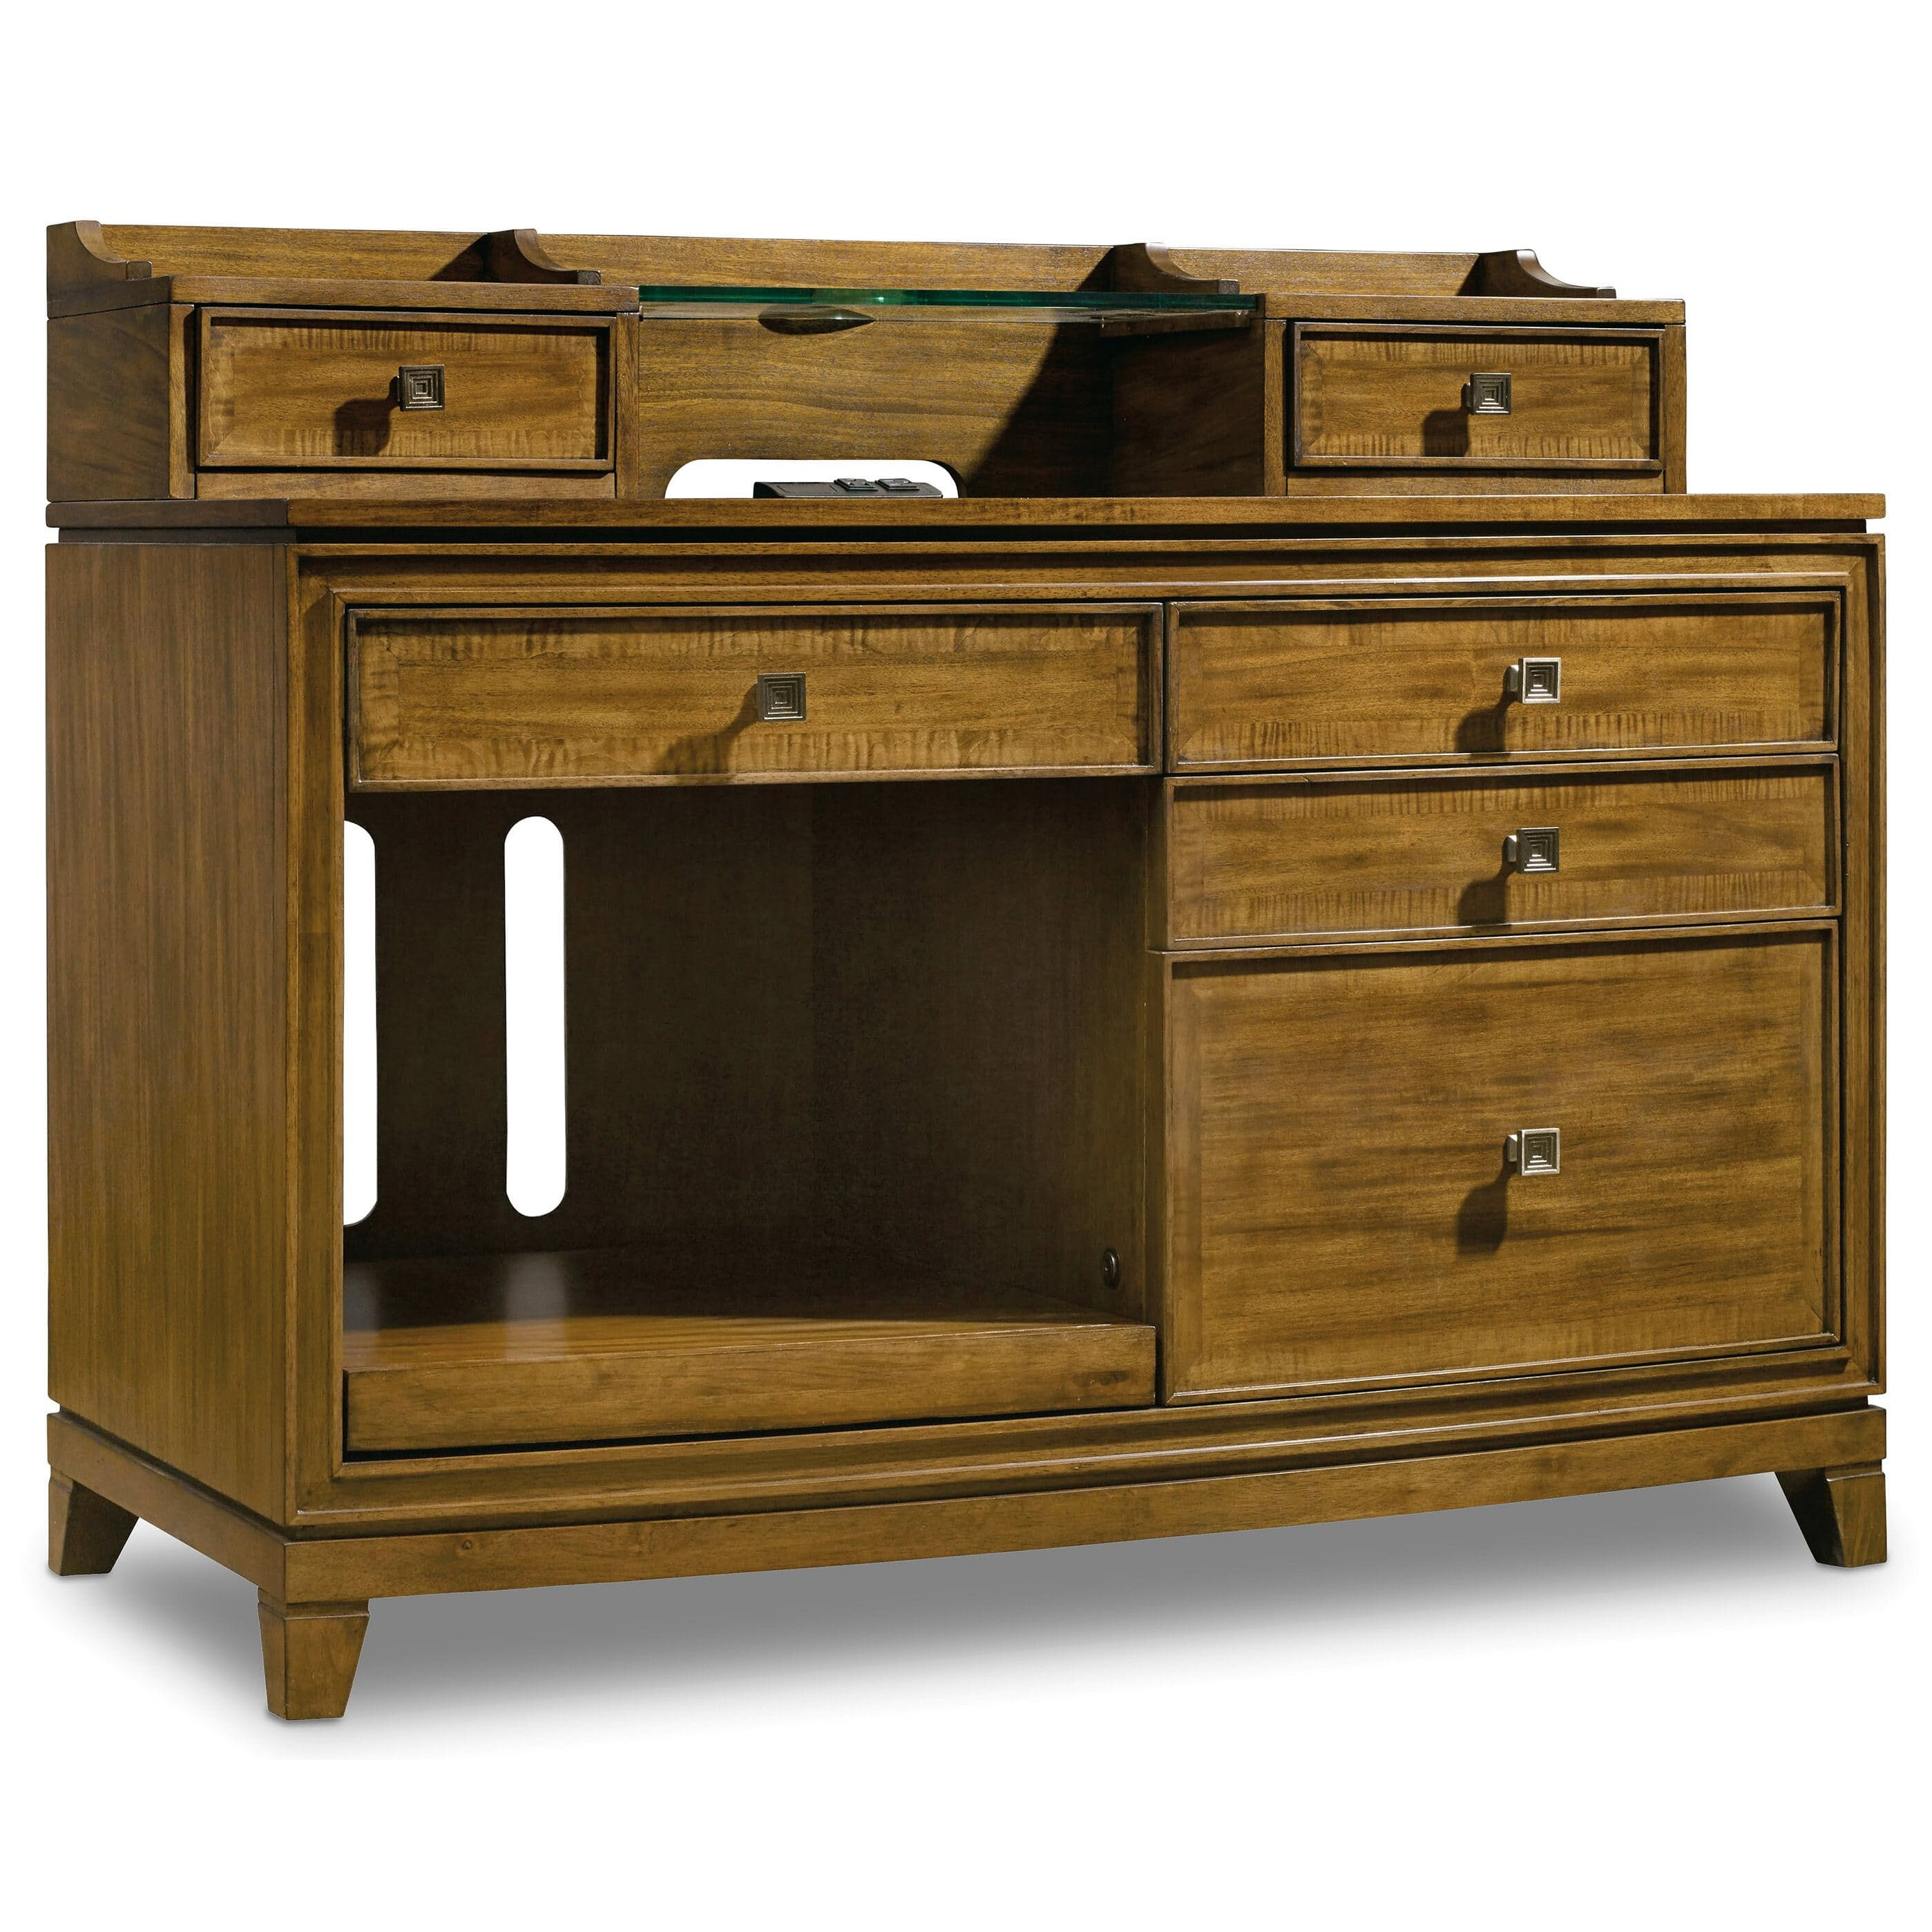 Hooker Furniture Retropolitan Credenza Desk With Hutch